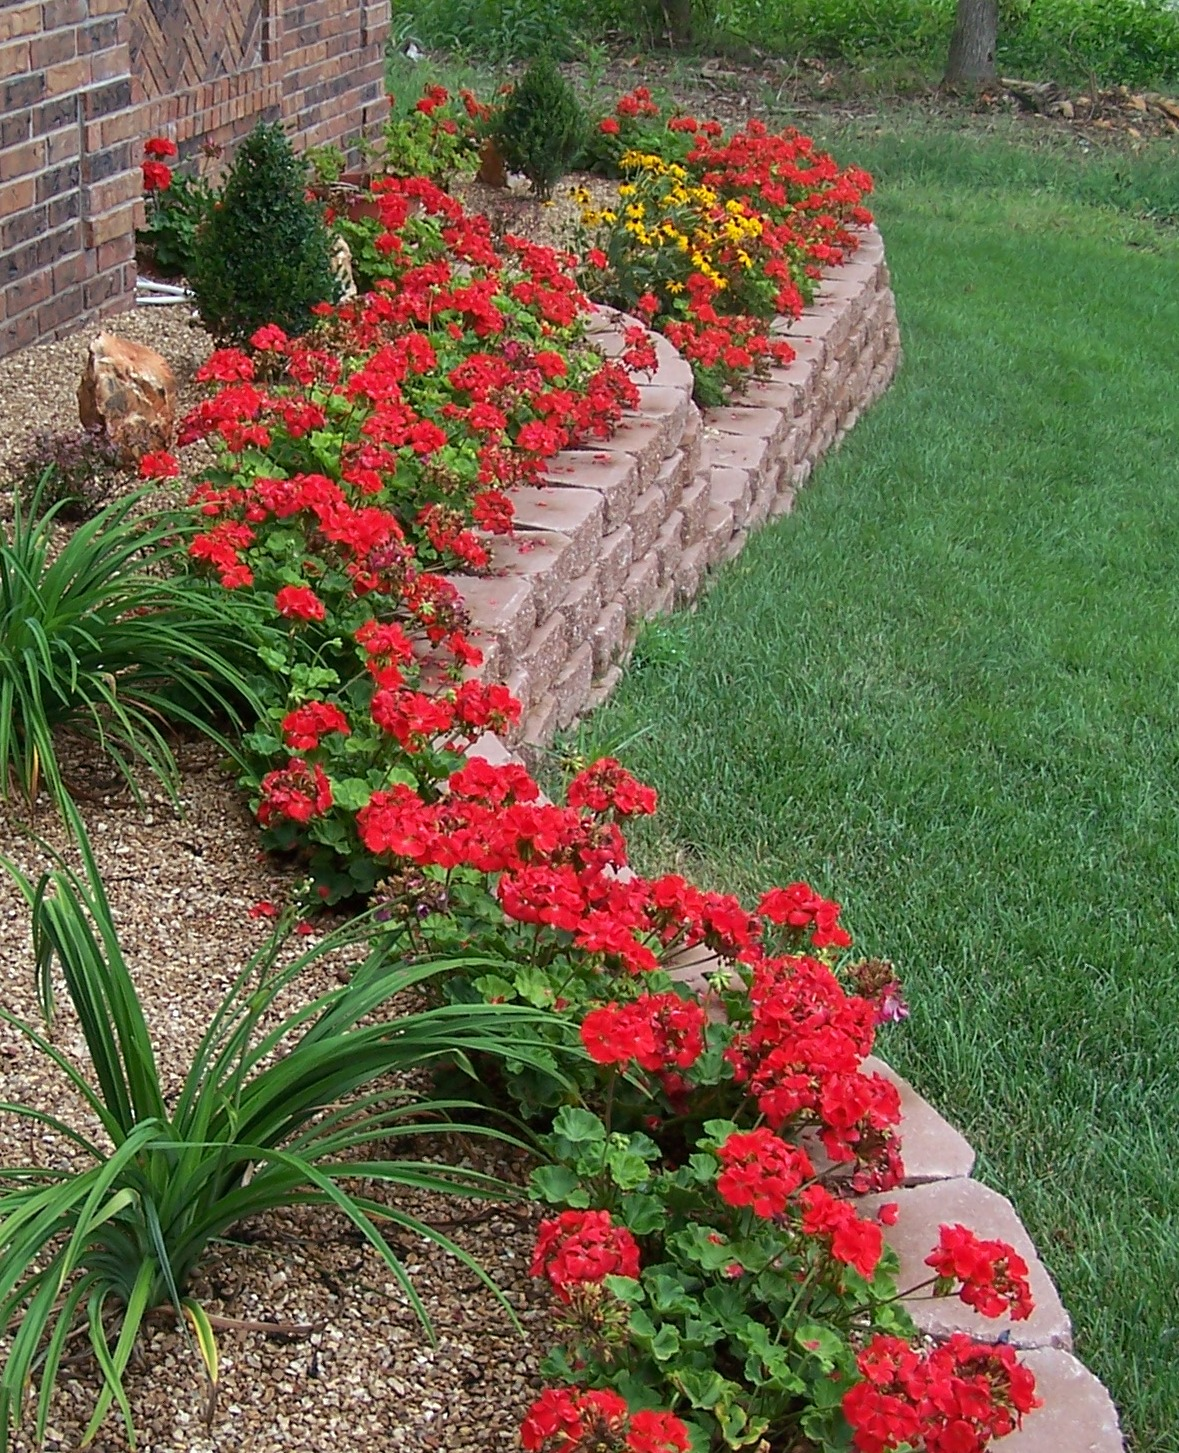 Landscaping Retaining Wall Blocks Menards : Menards ? landscape retaining wall blocks price match off